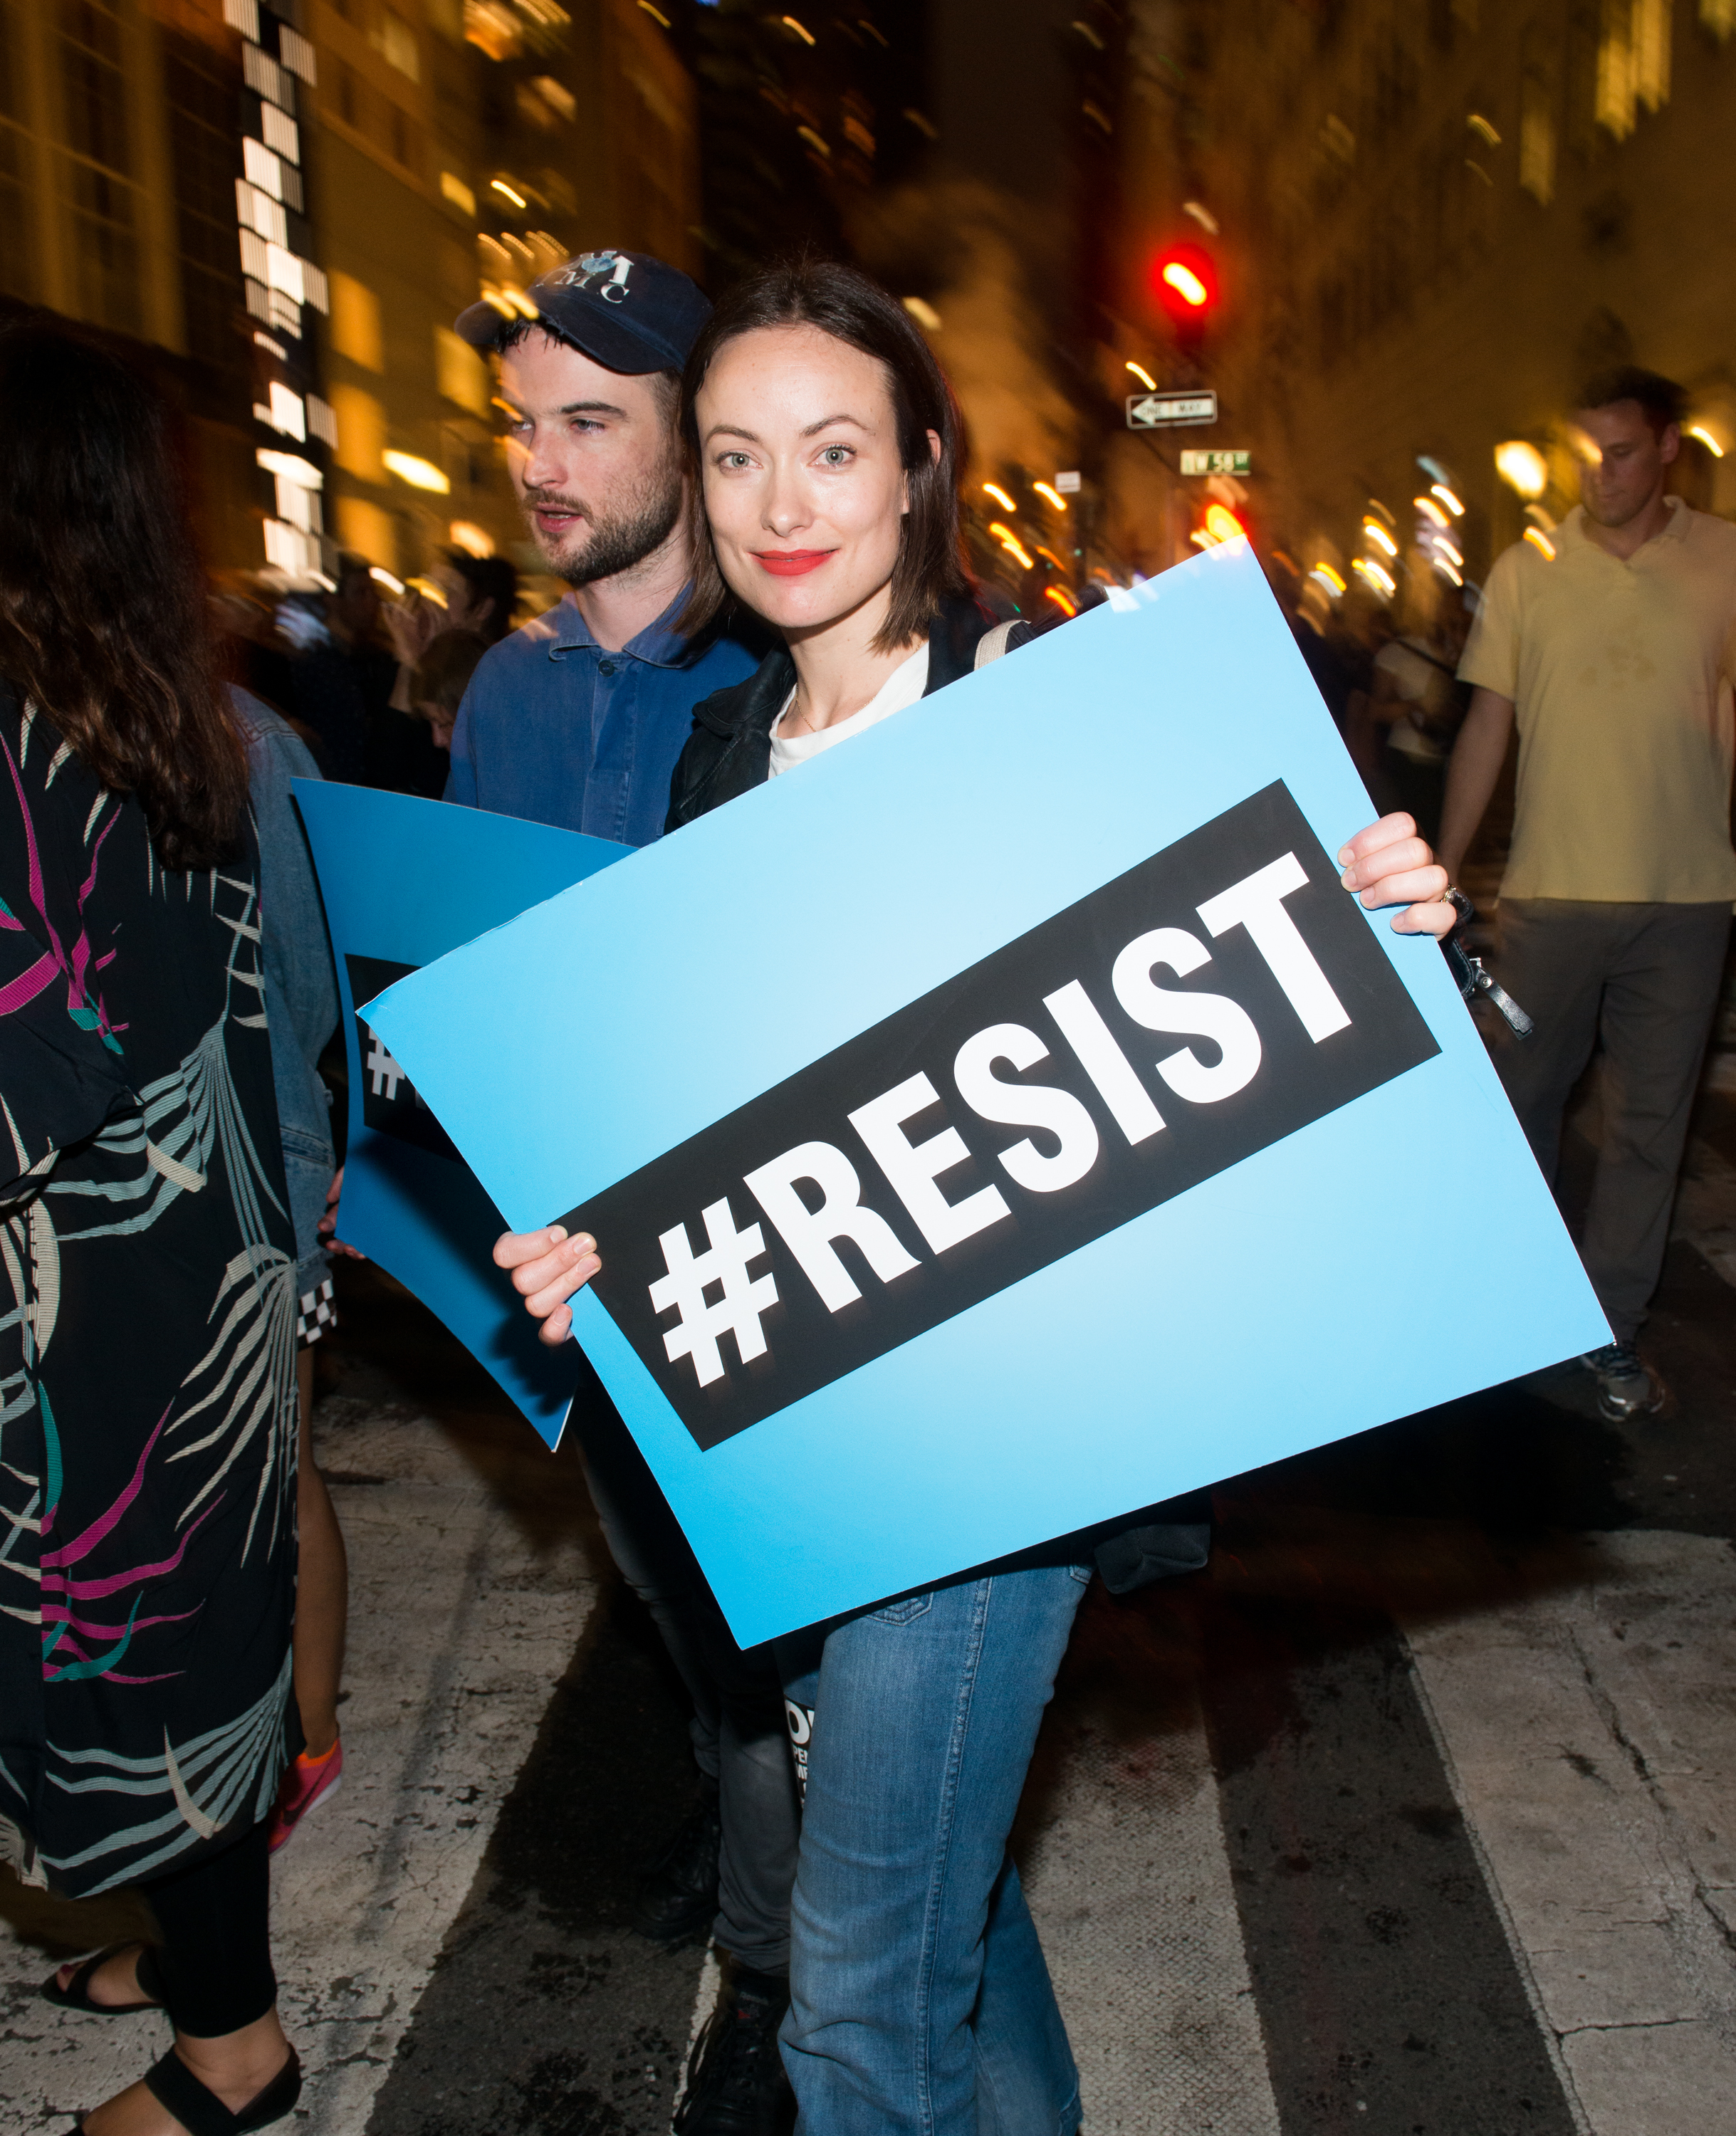 Olivia Wilde joins Michael Moore as he leads his Broadway audience to Trump Tower during a protest in New York City on August 15, 2017.